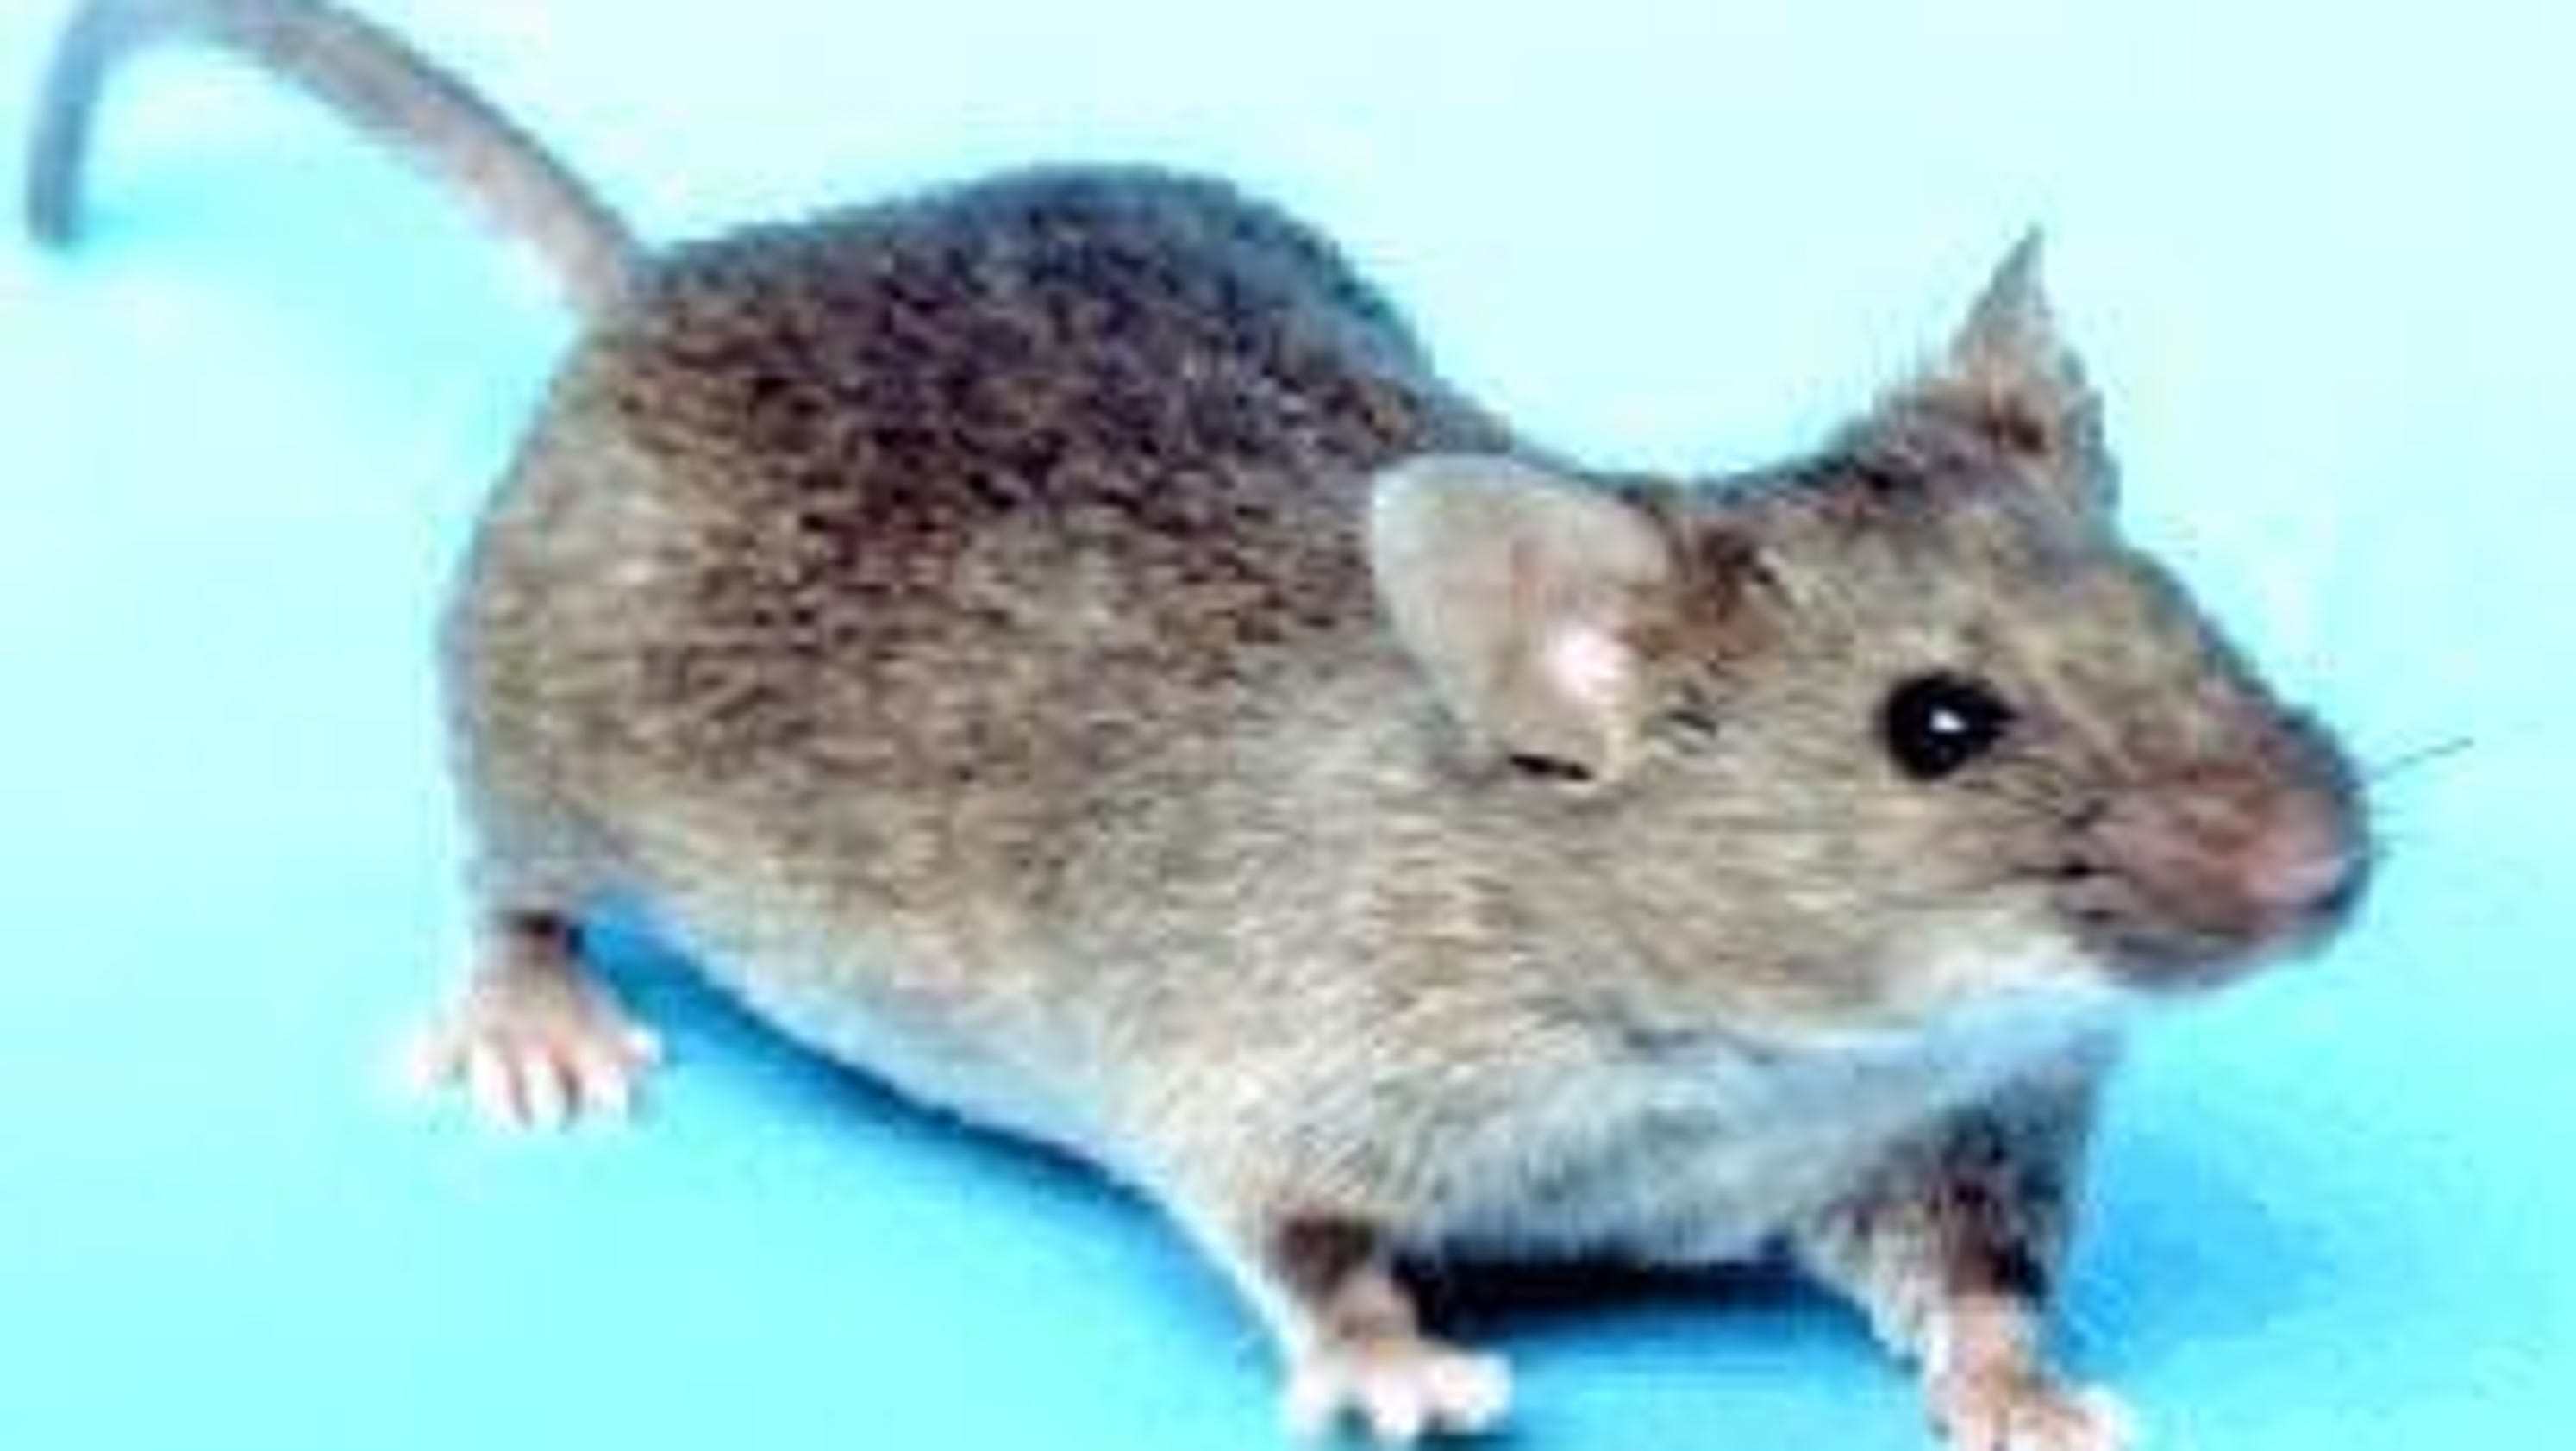 Eek! A Mus musculus (mouse)